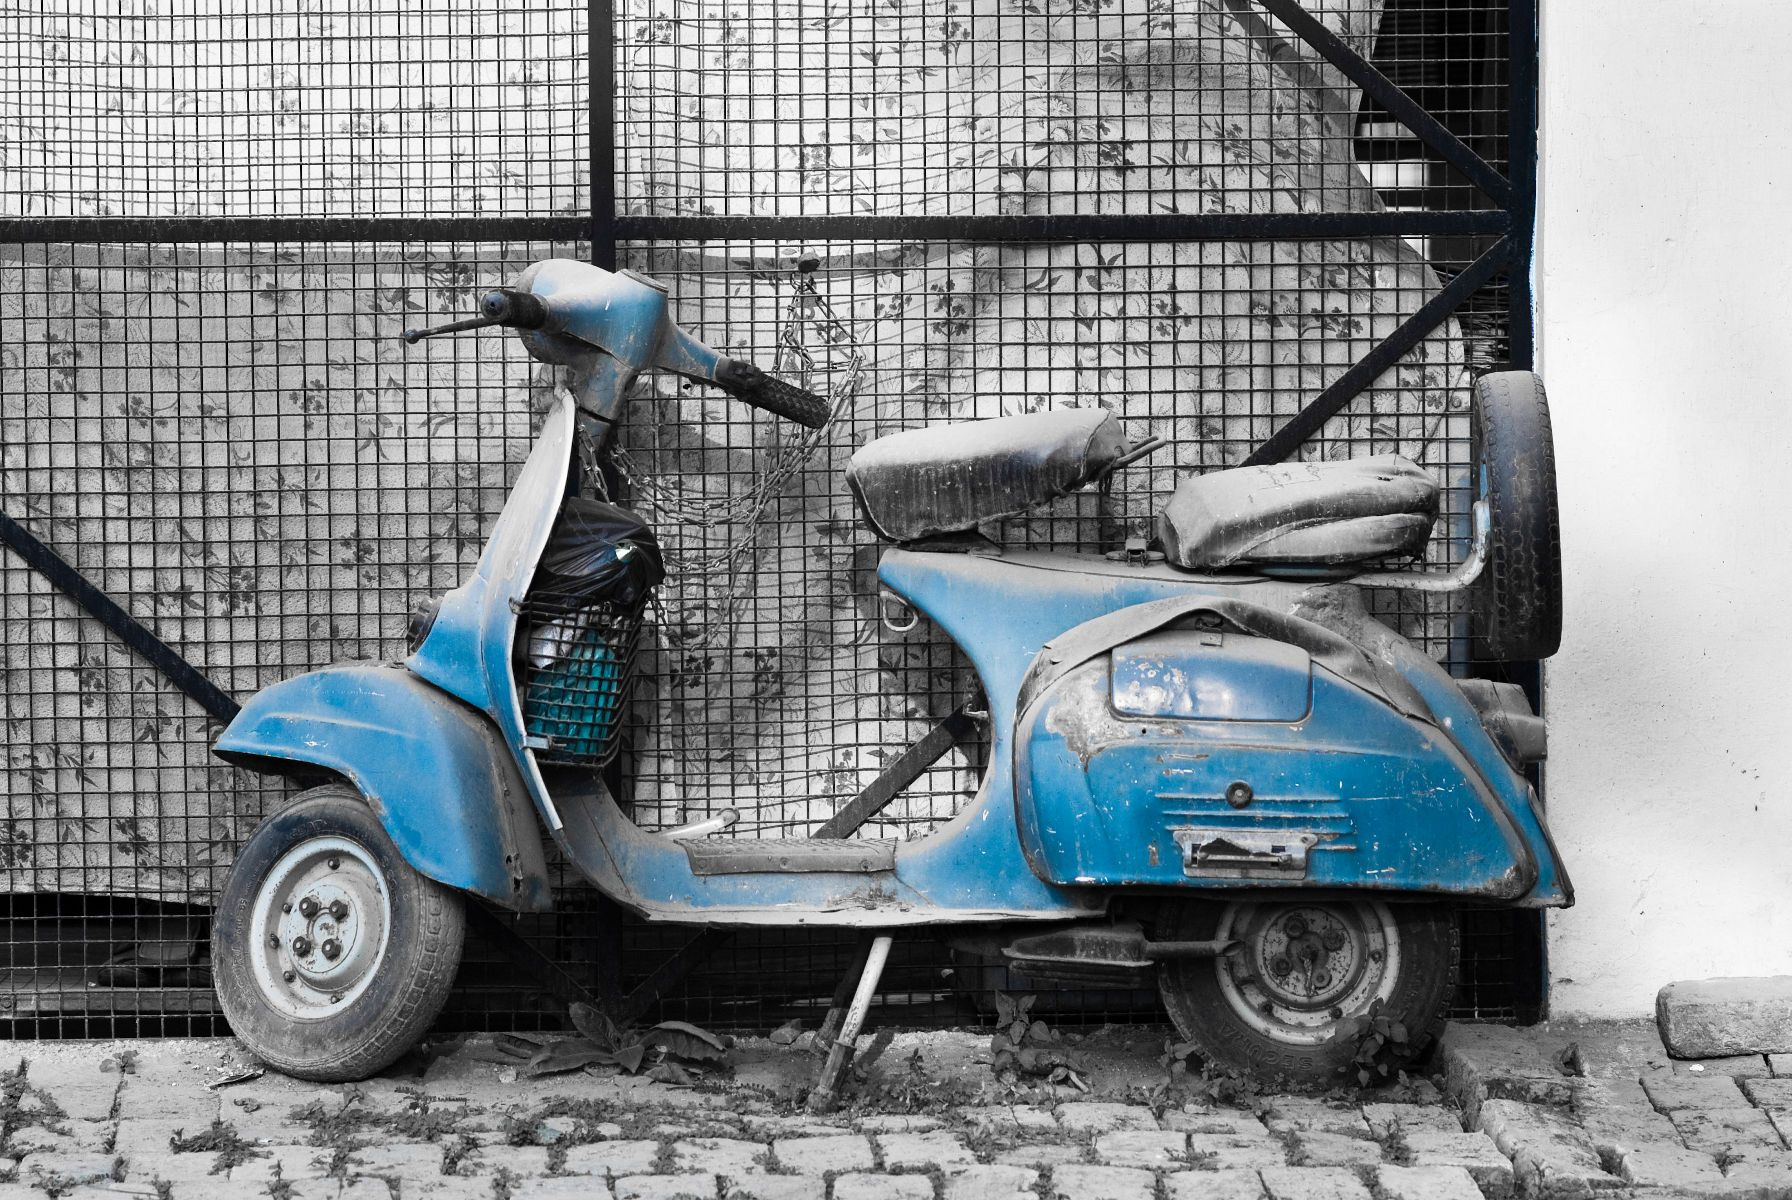 Old scooter photo